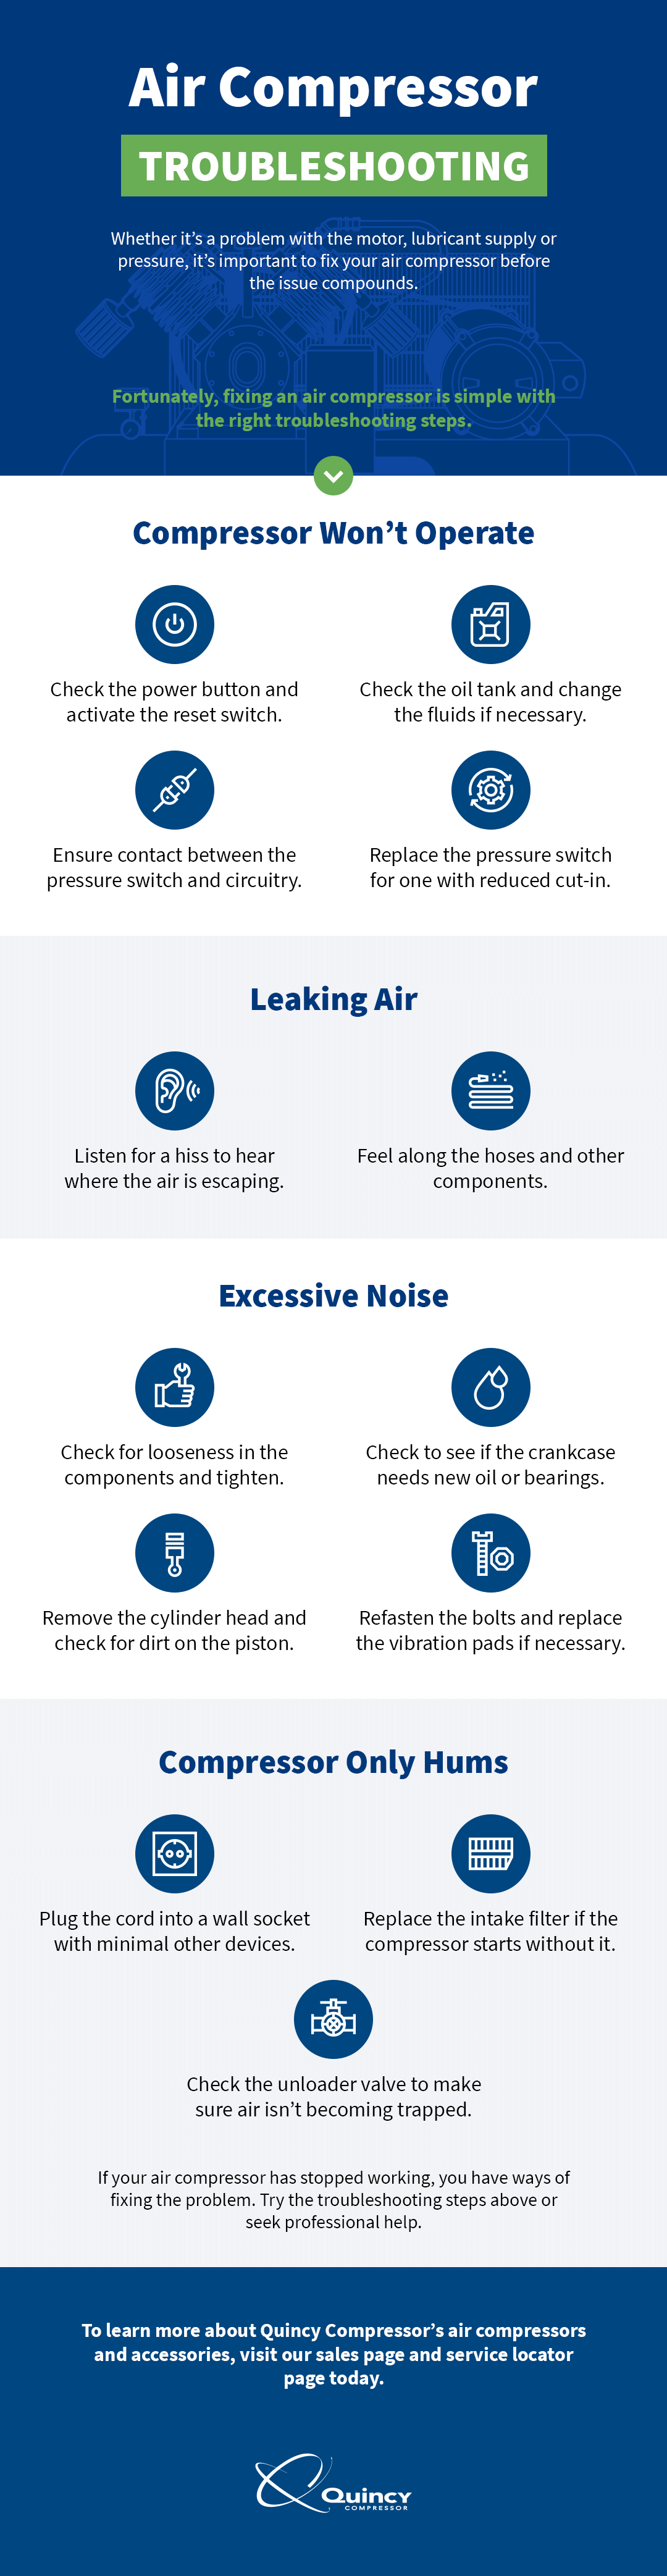 Air Compressor Troubleshooting Chart